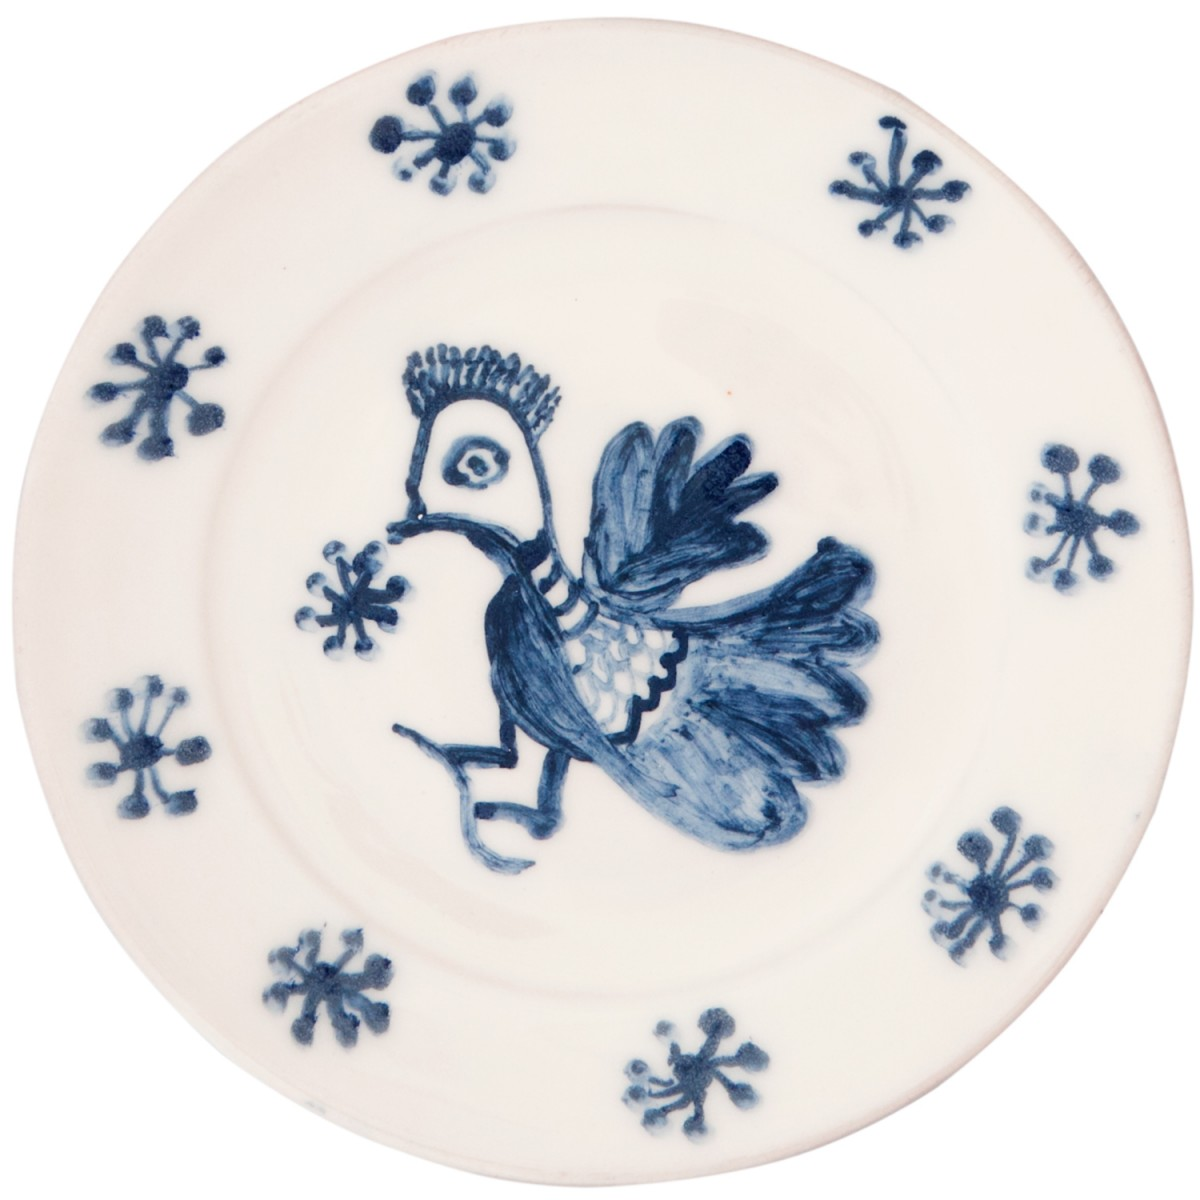 Decorative Blue and white plates, Hand painted Bird - 1